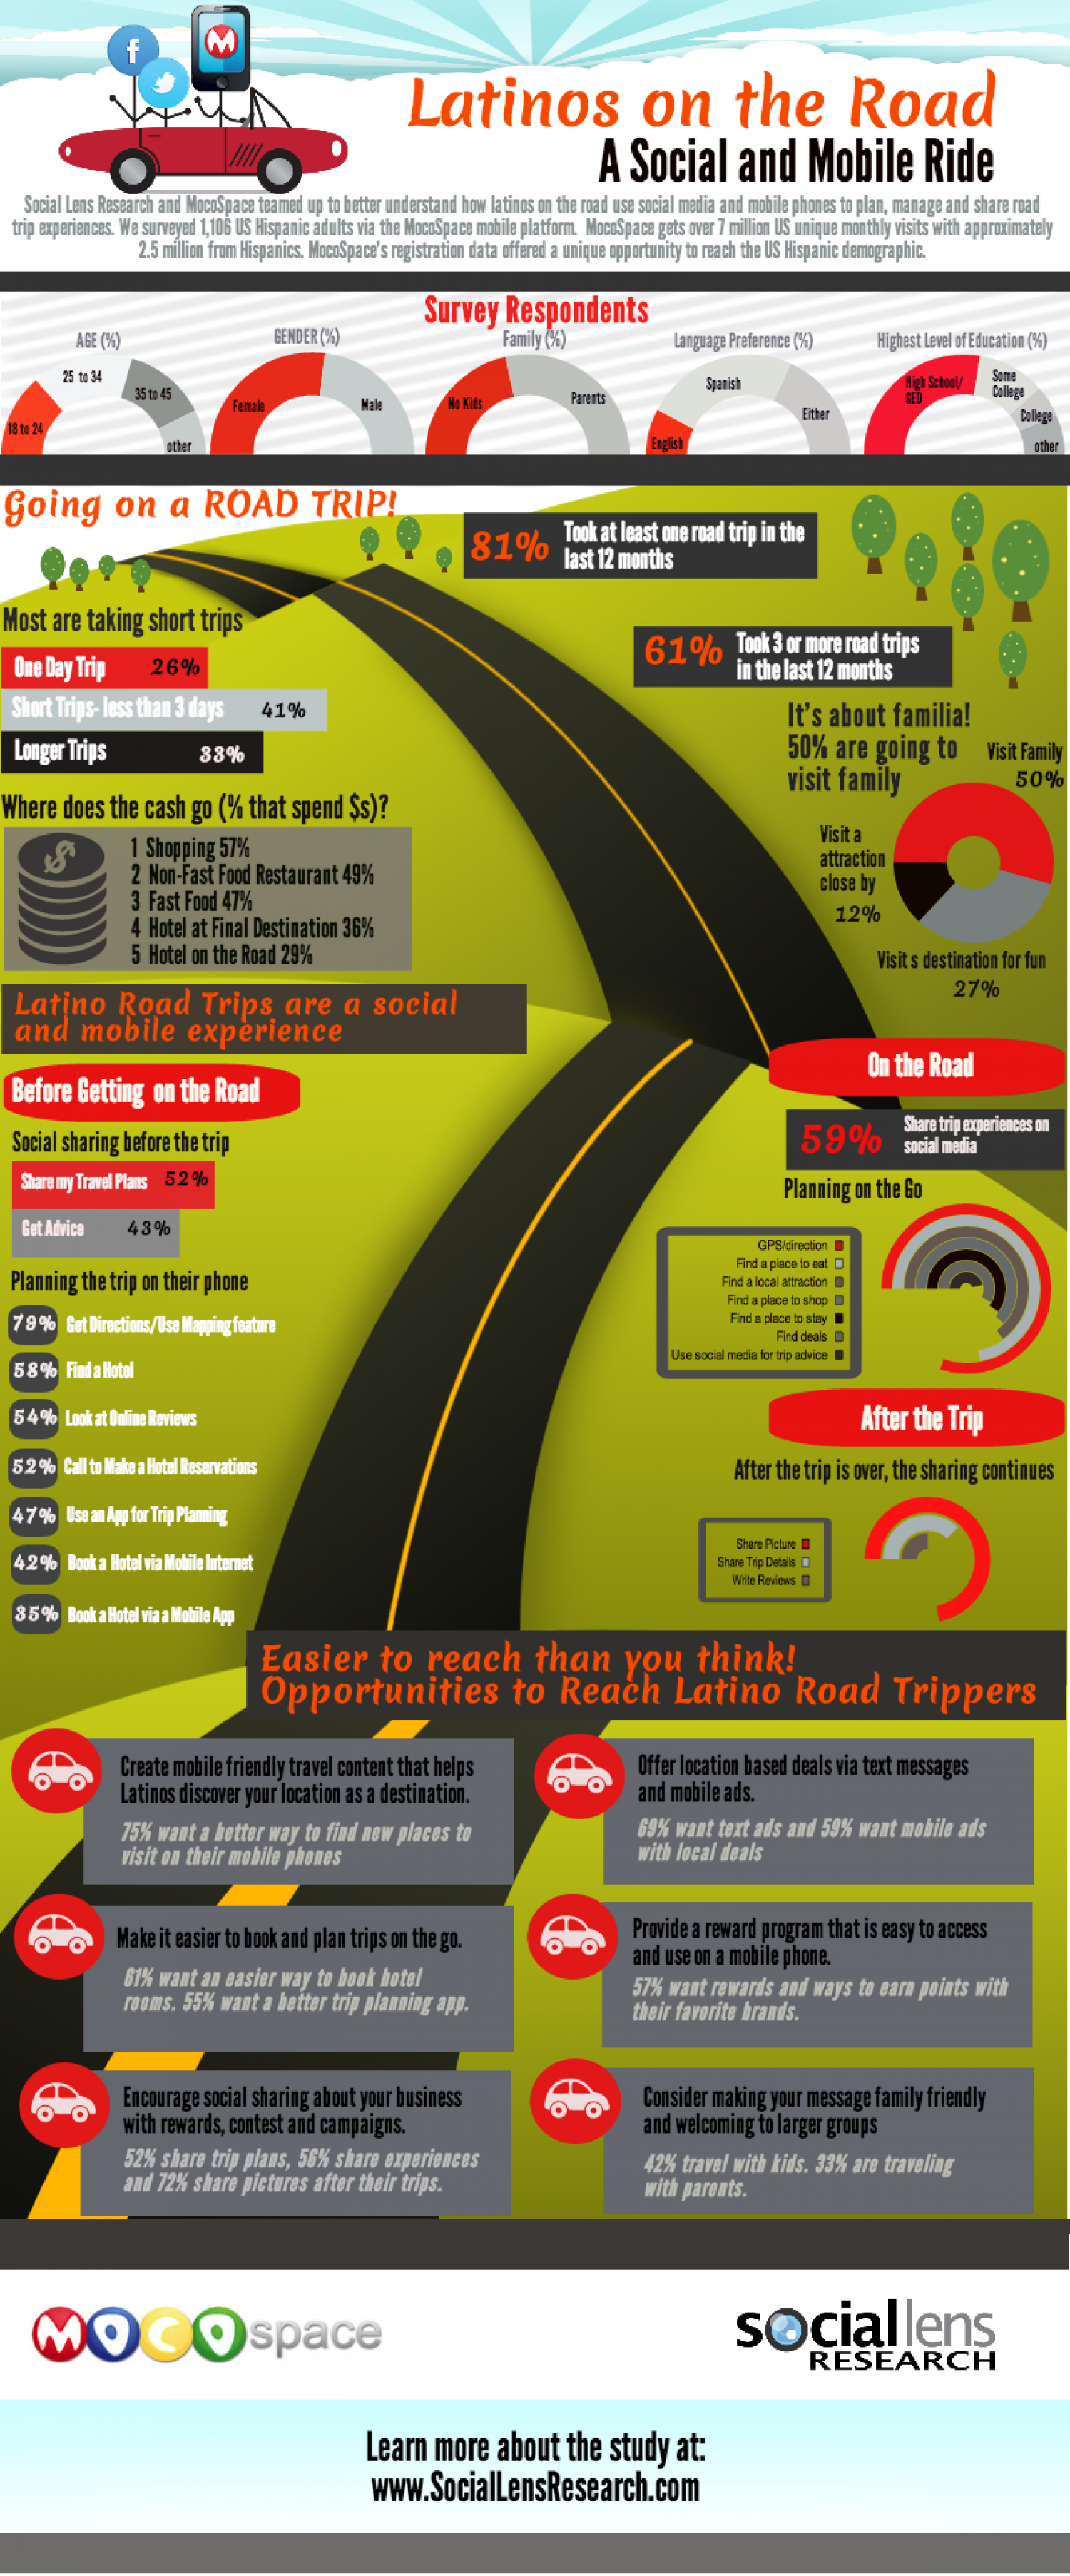 Latinos on the Road: A Social and Mobile Ride  Infographic